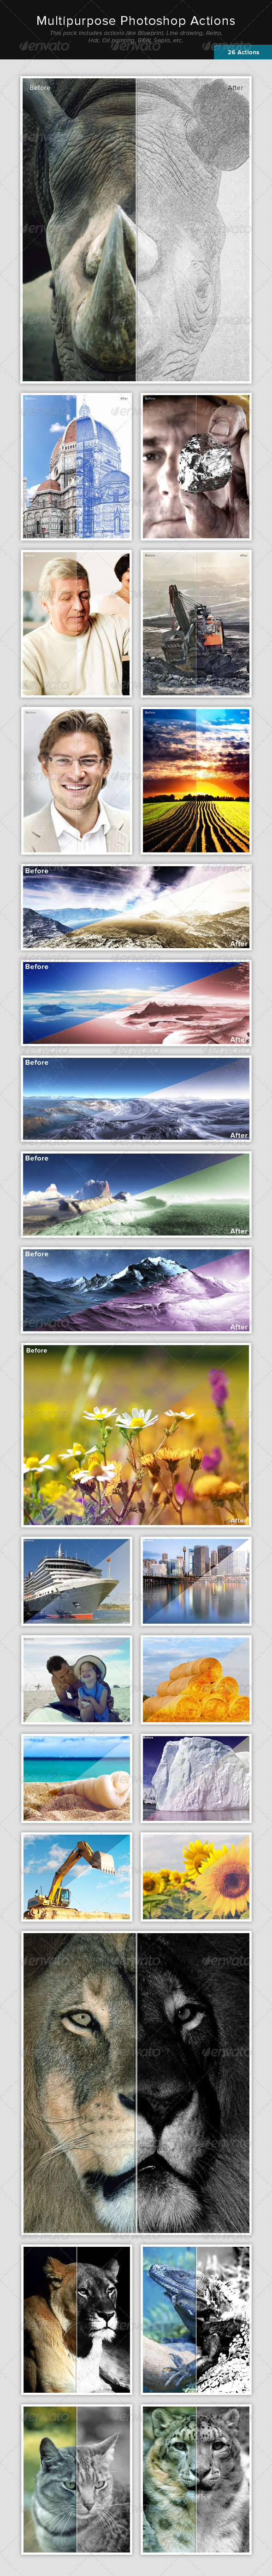 GraphicRiver 26 Multipurpose Photoshop Actions 6813050